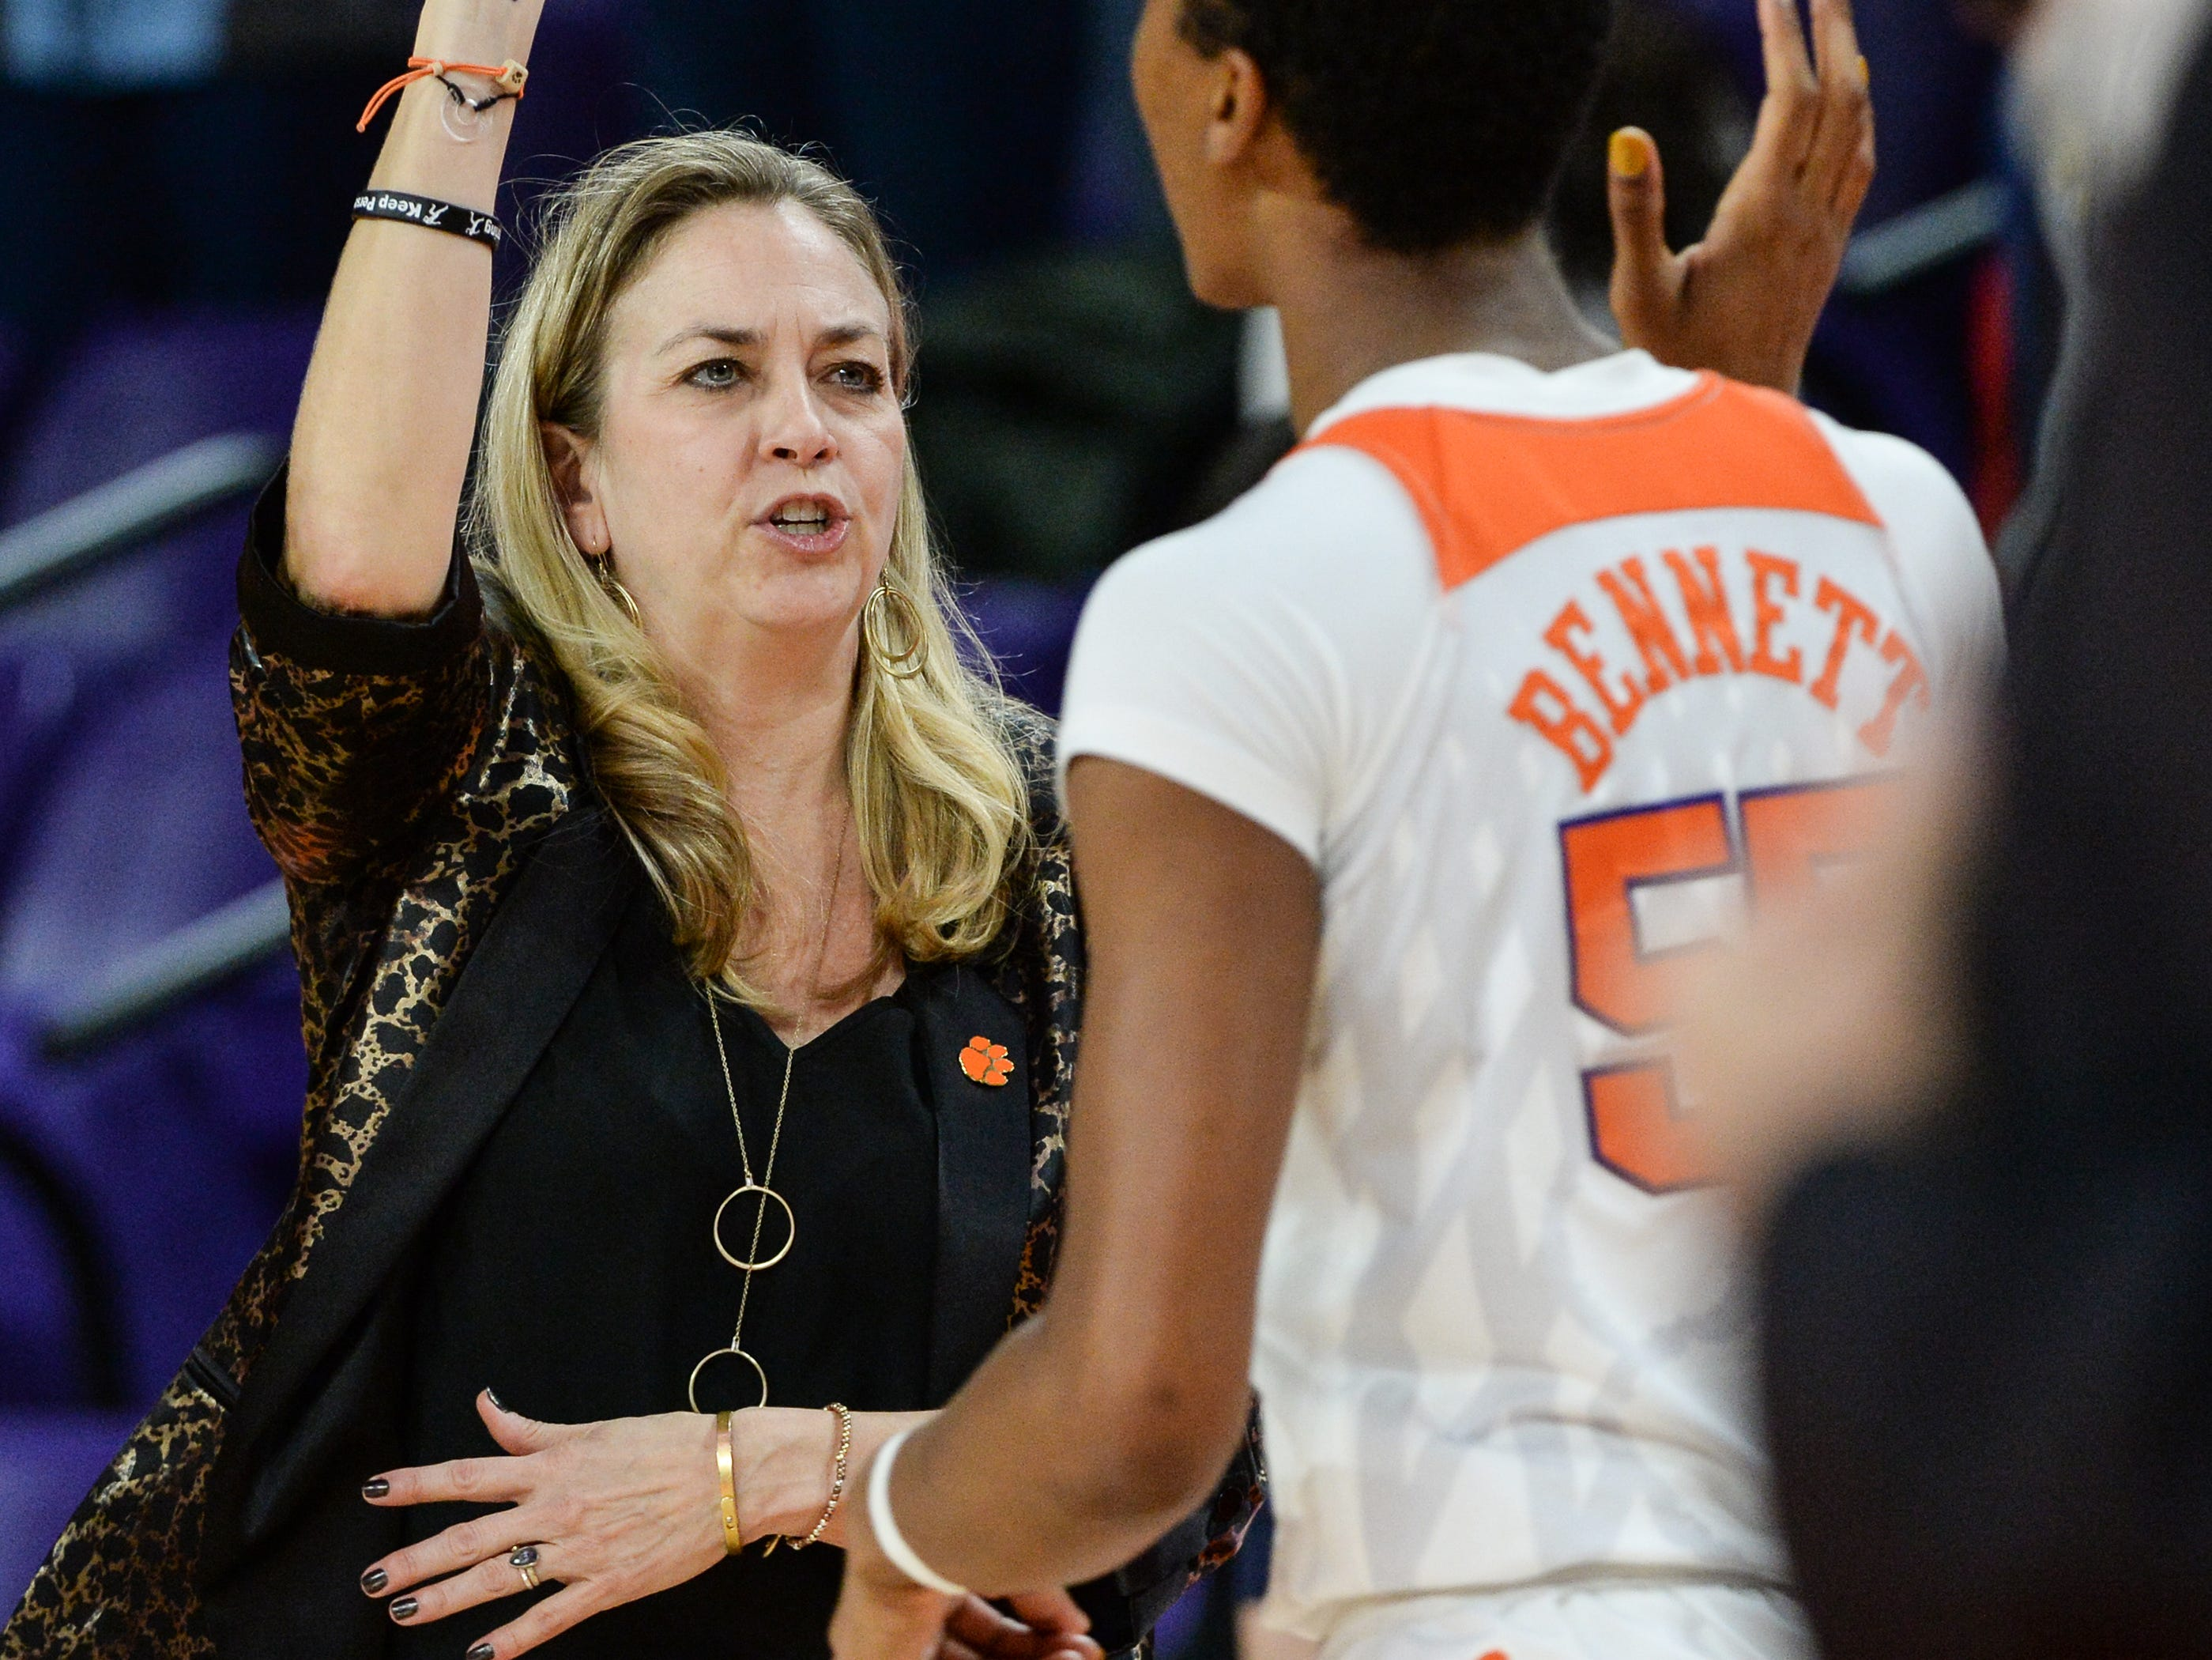 Clemson Head Coach Amanda Butler high-fives center Tylar Bennett(55) after their 71-61 win over Georgia Tech after the gameat Littlejohn Coliseum in Clemson on Thursday, January 17, 2019.